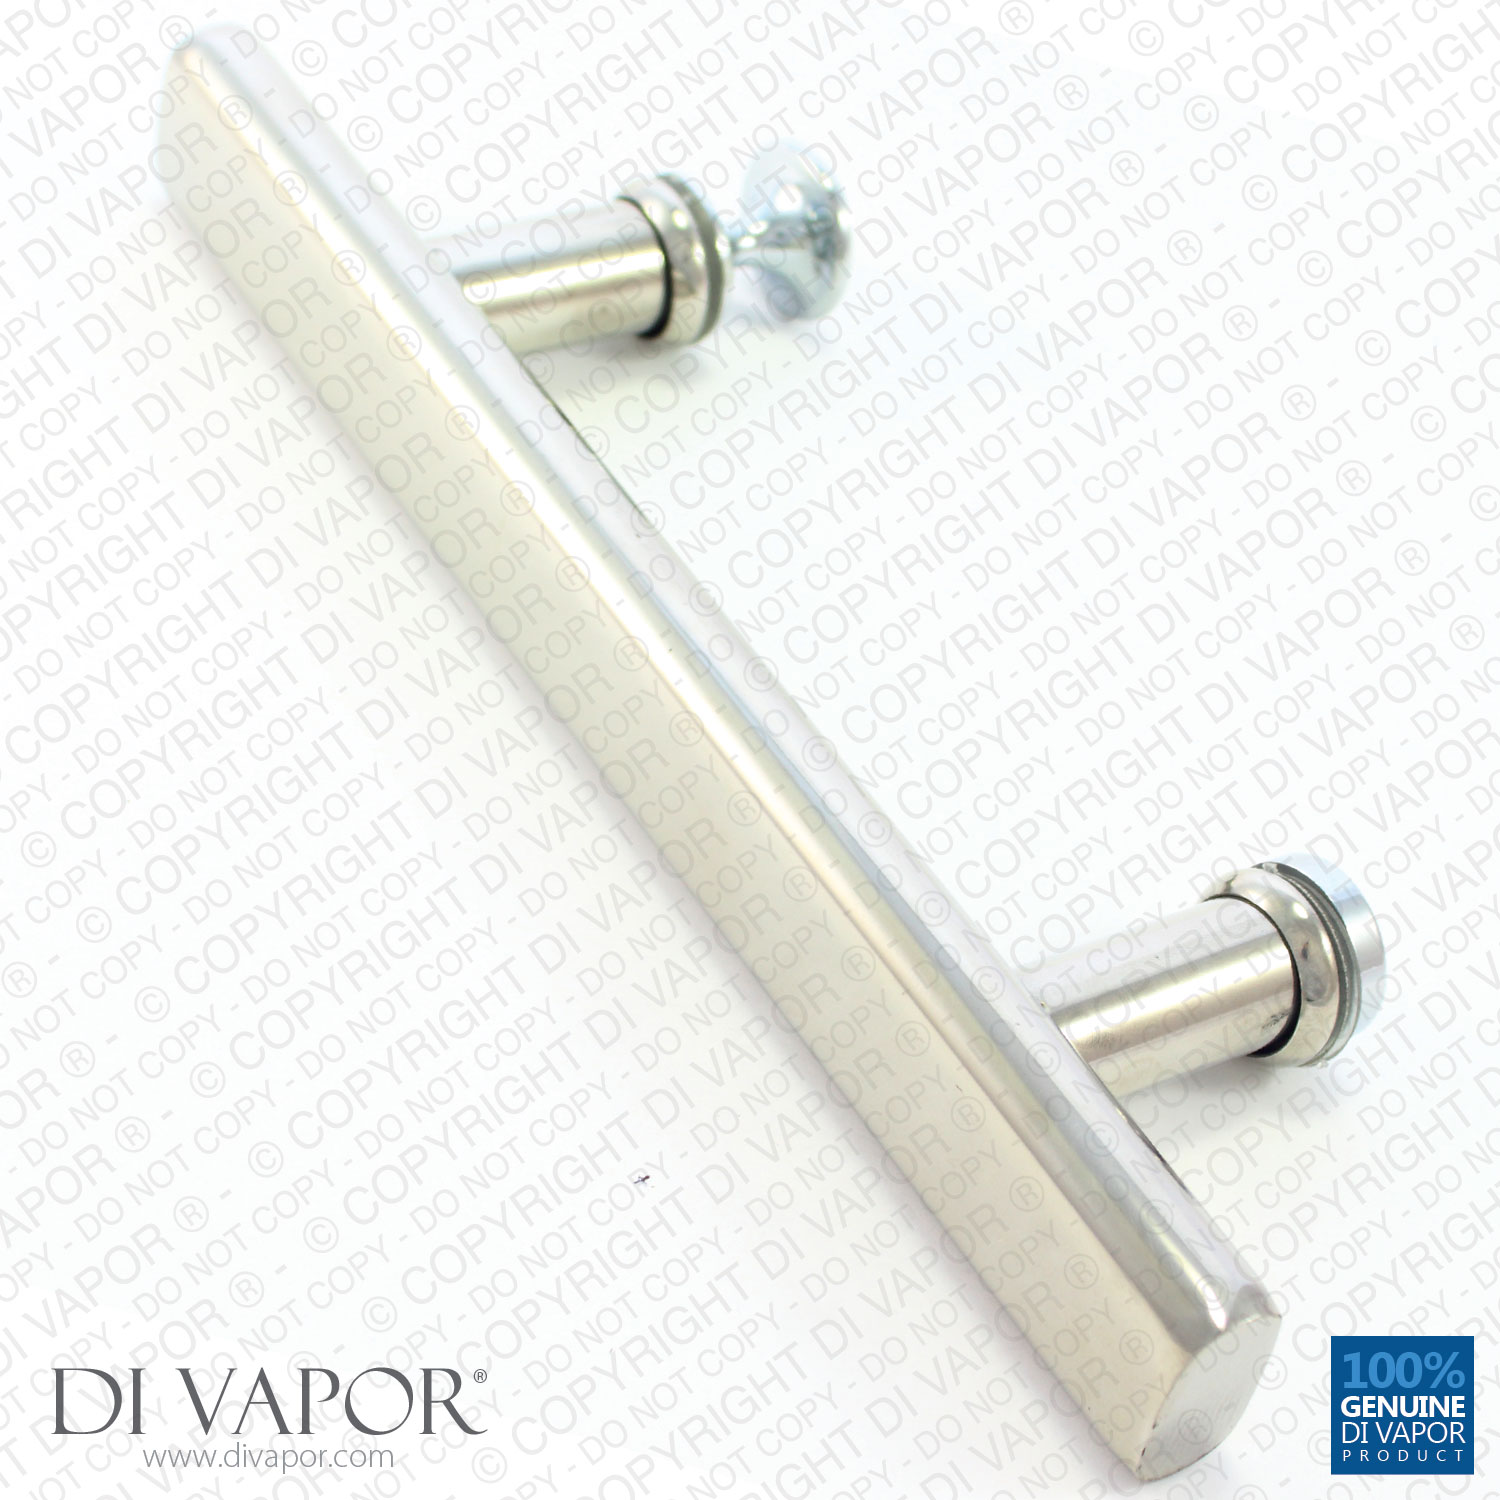 Di Vapor R 130mm Shower Door Handle 13cm Hole To Hole Stainless